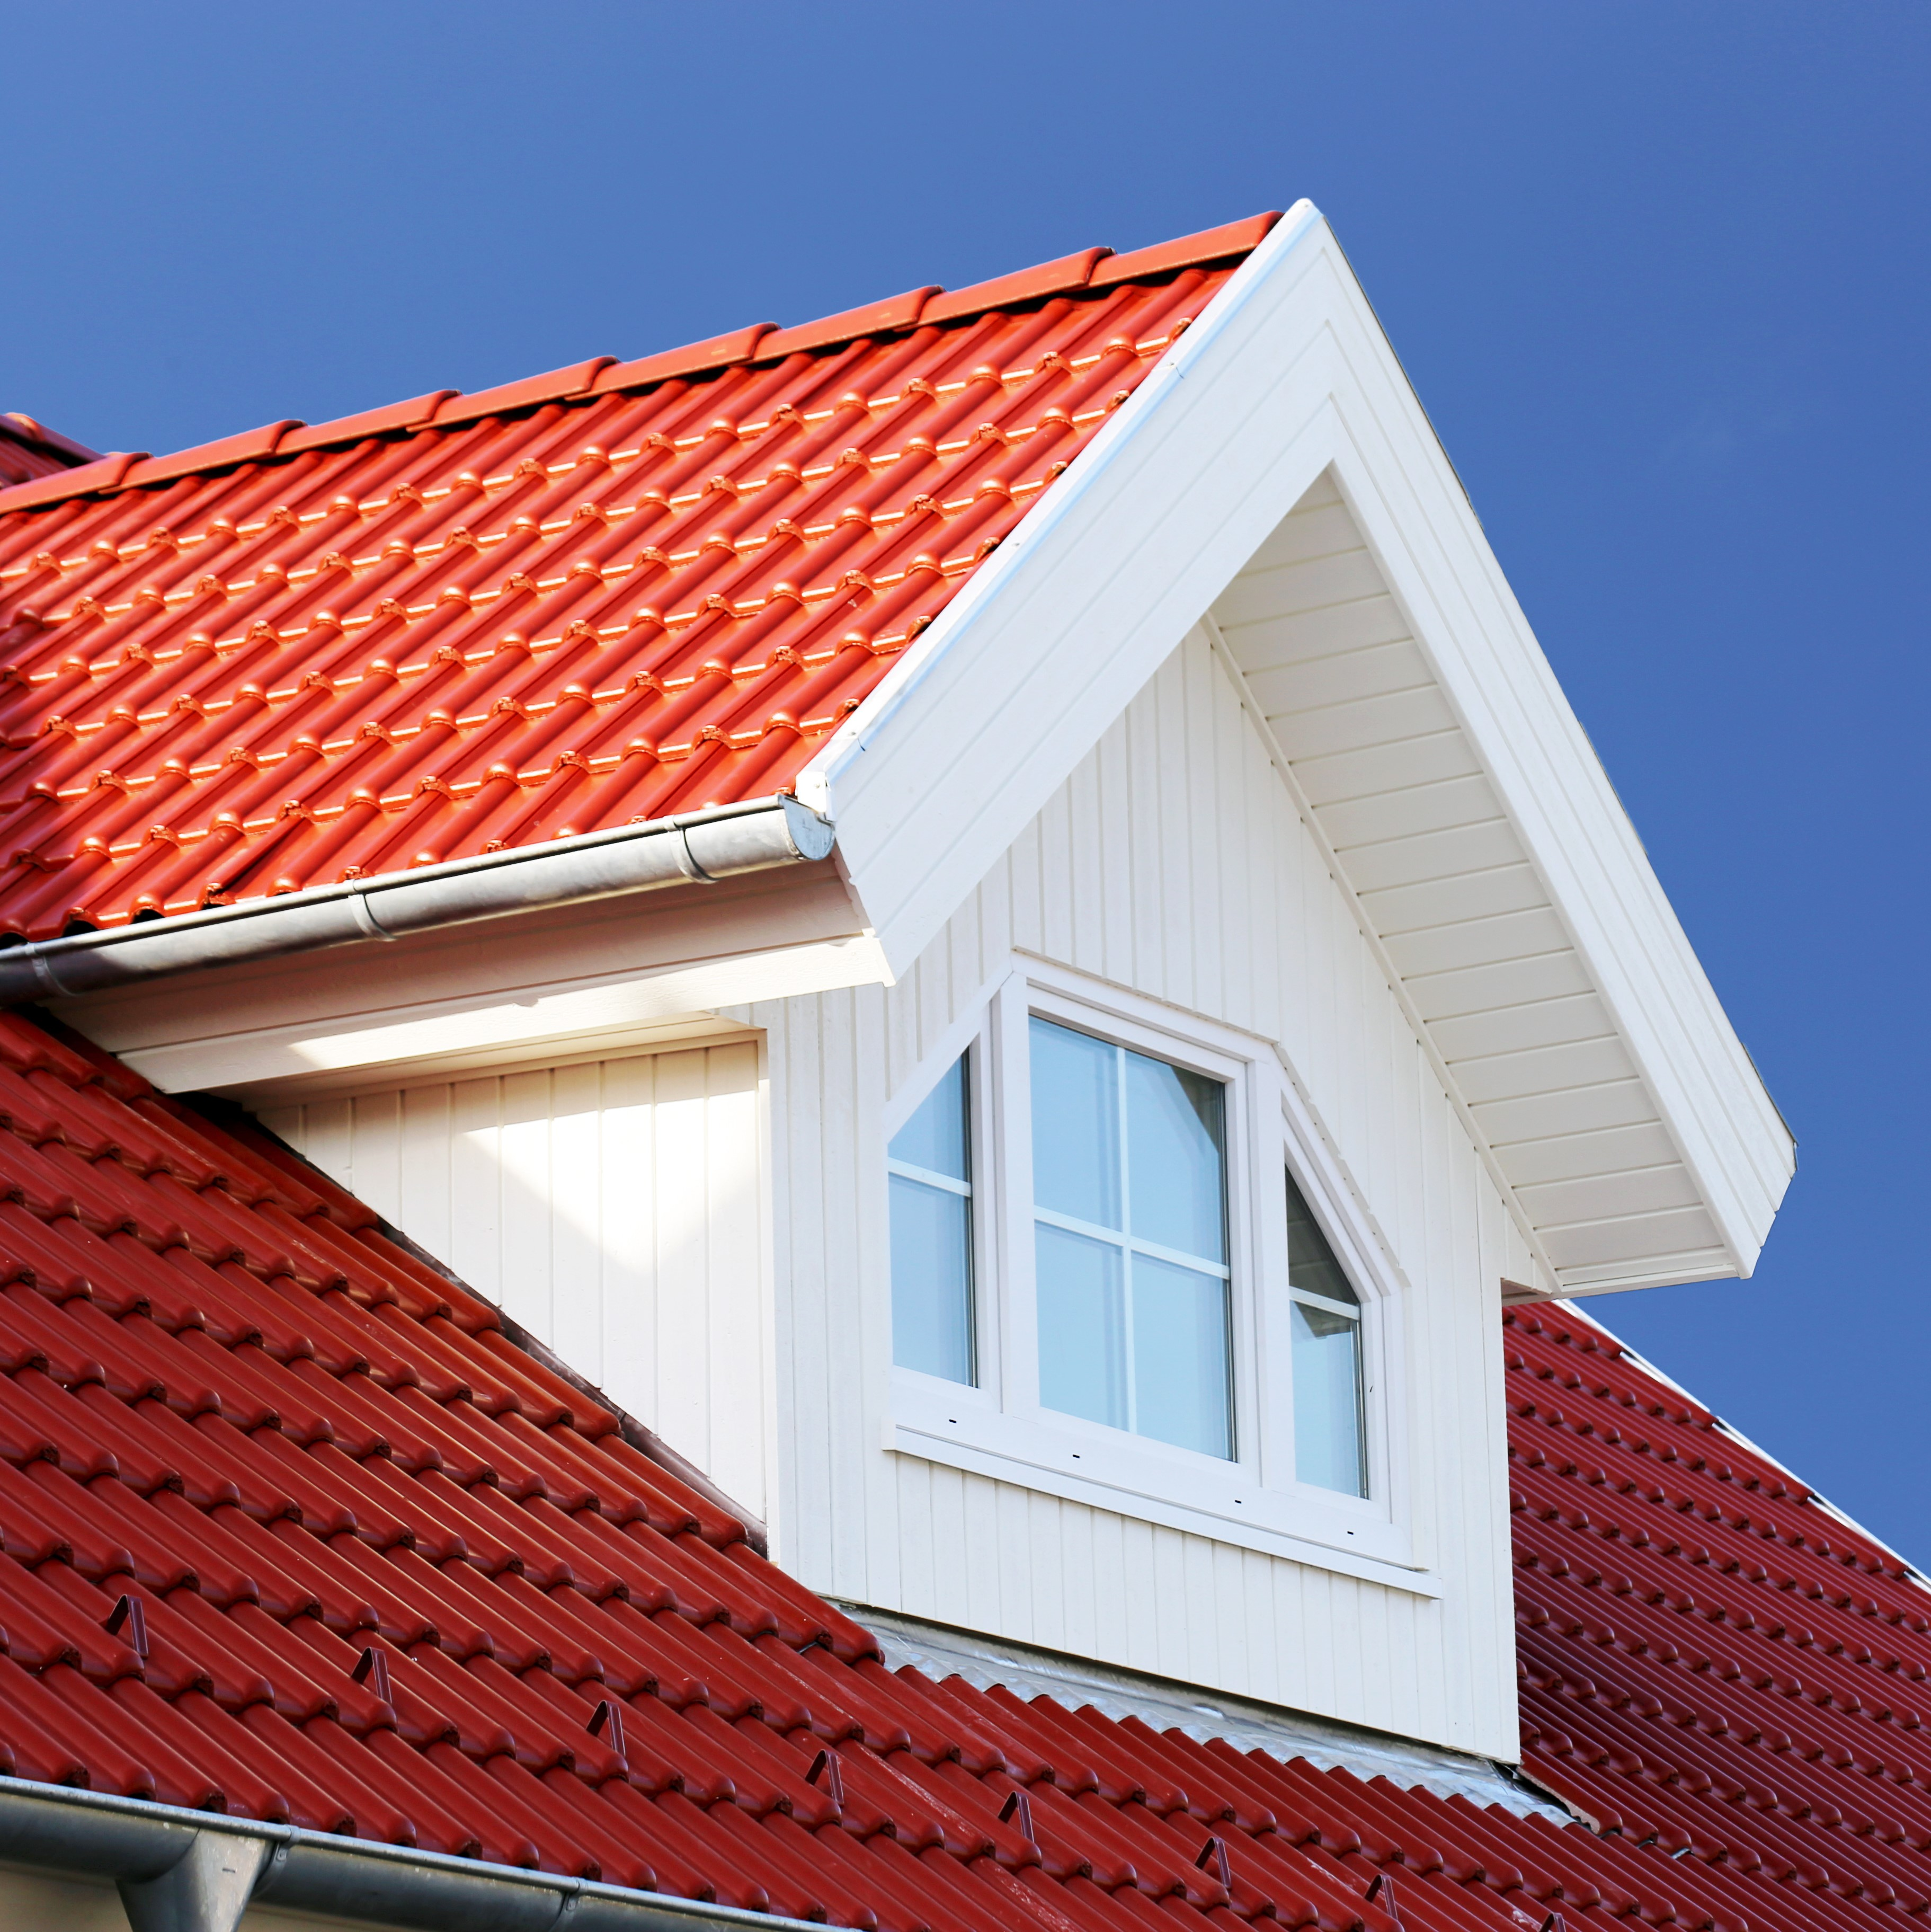 A red tile roof on a home.